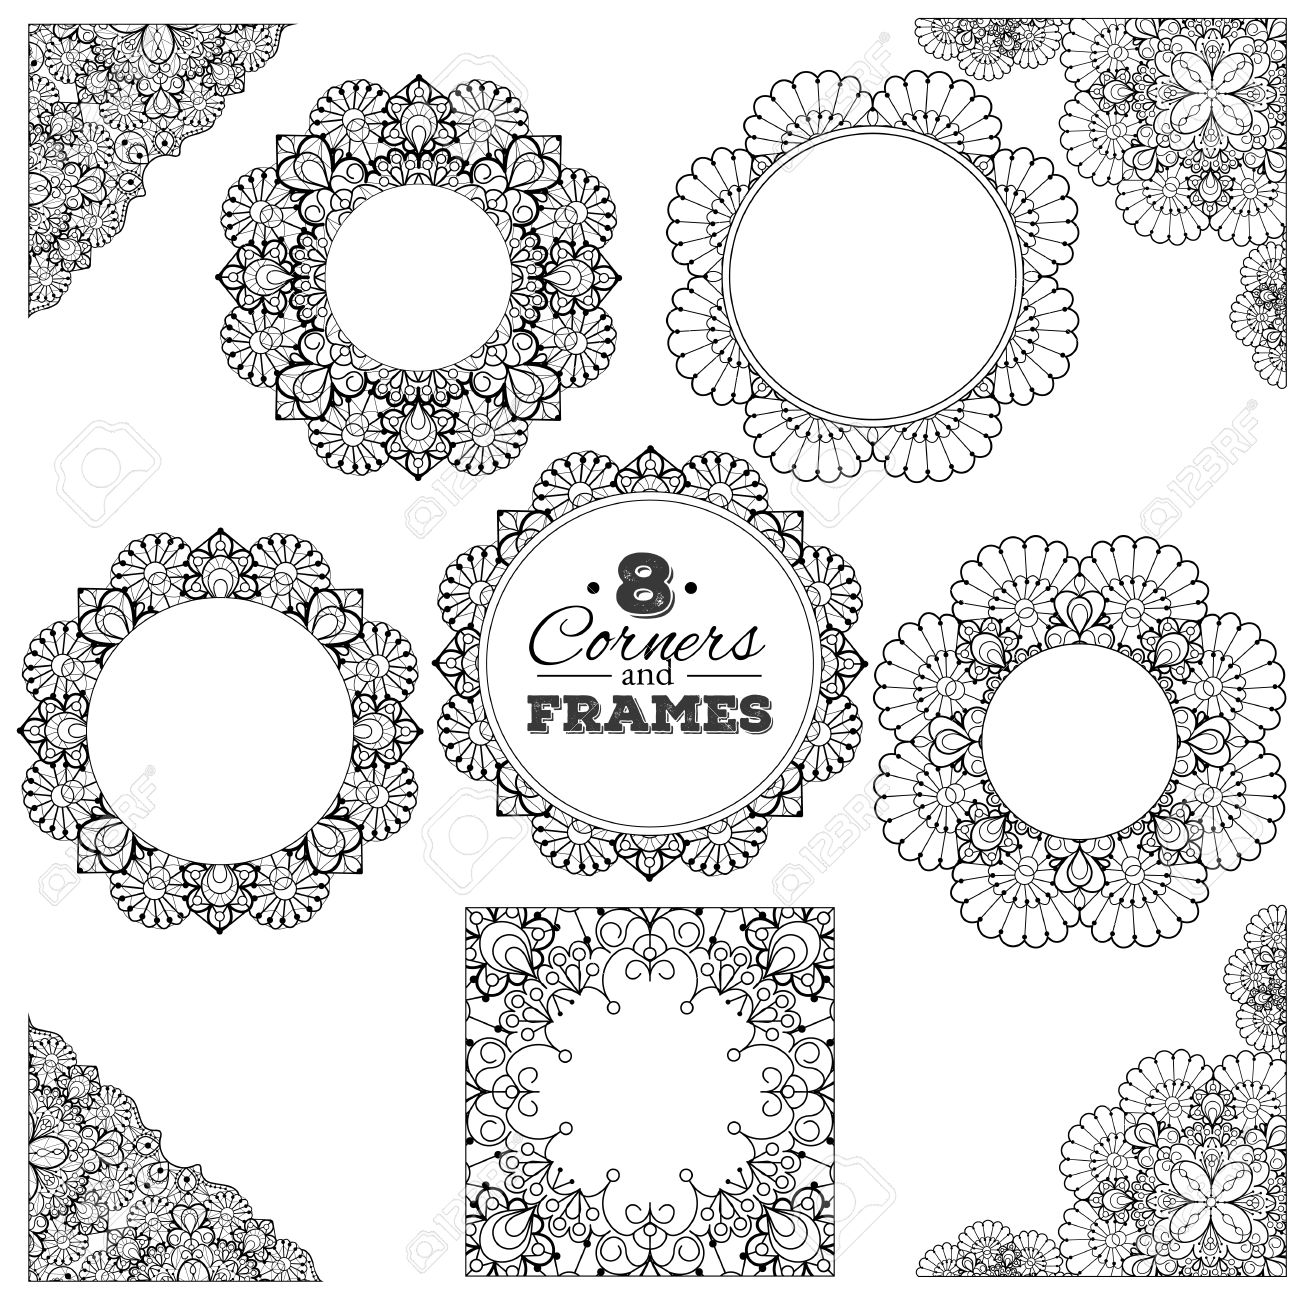 set of lace frames and corners with transparent background. royalty free  cliparts, vectors, and stock illustration. image 38747703.  123rf